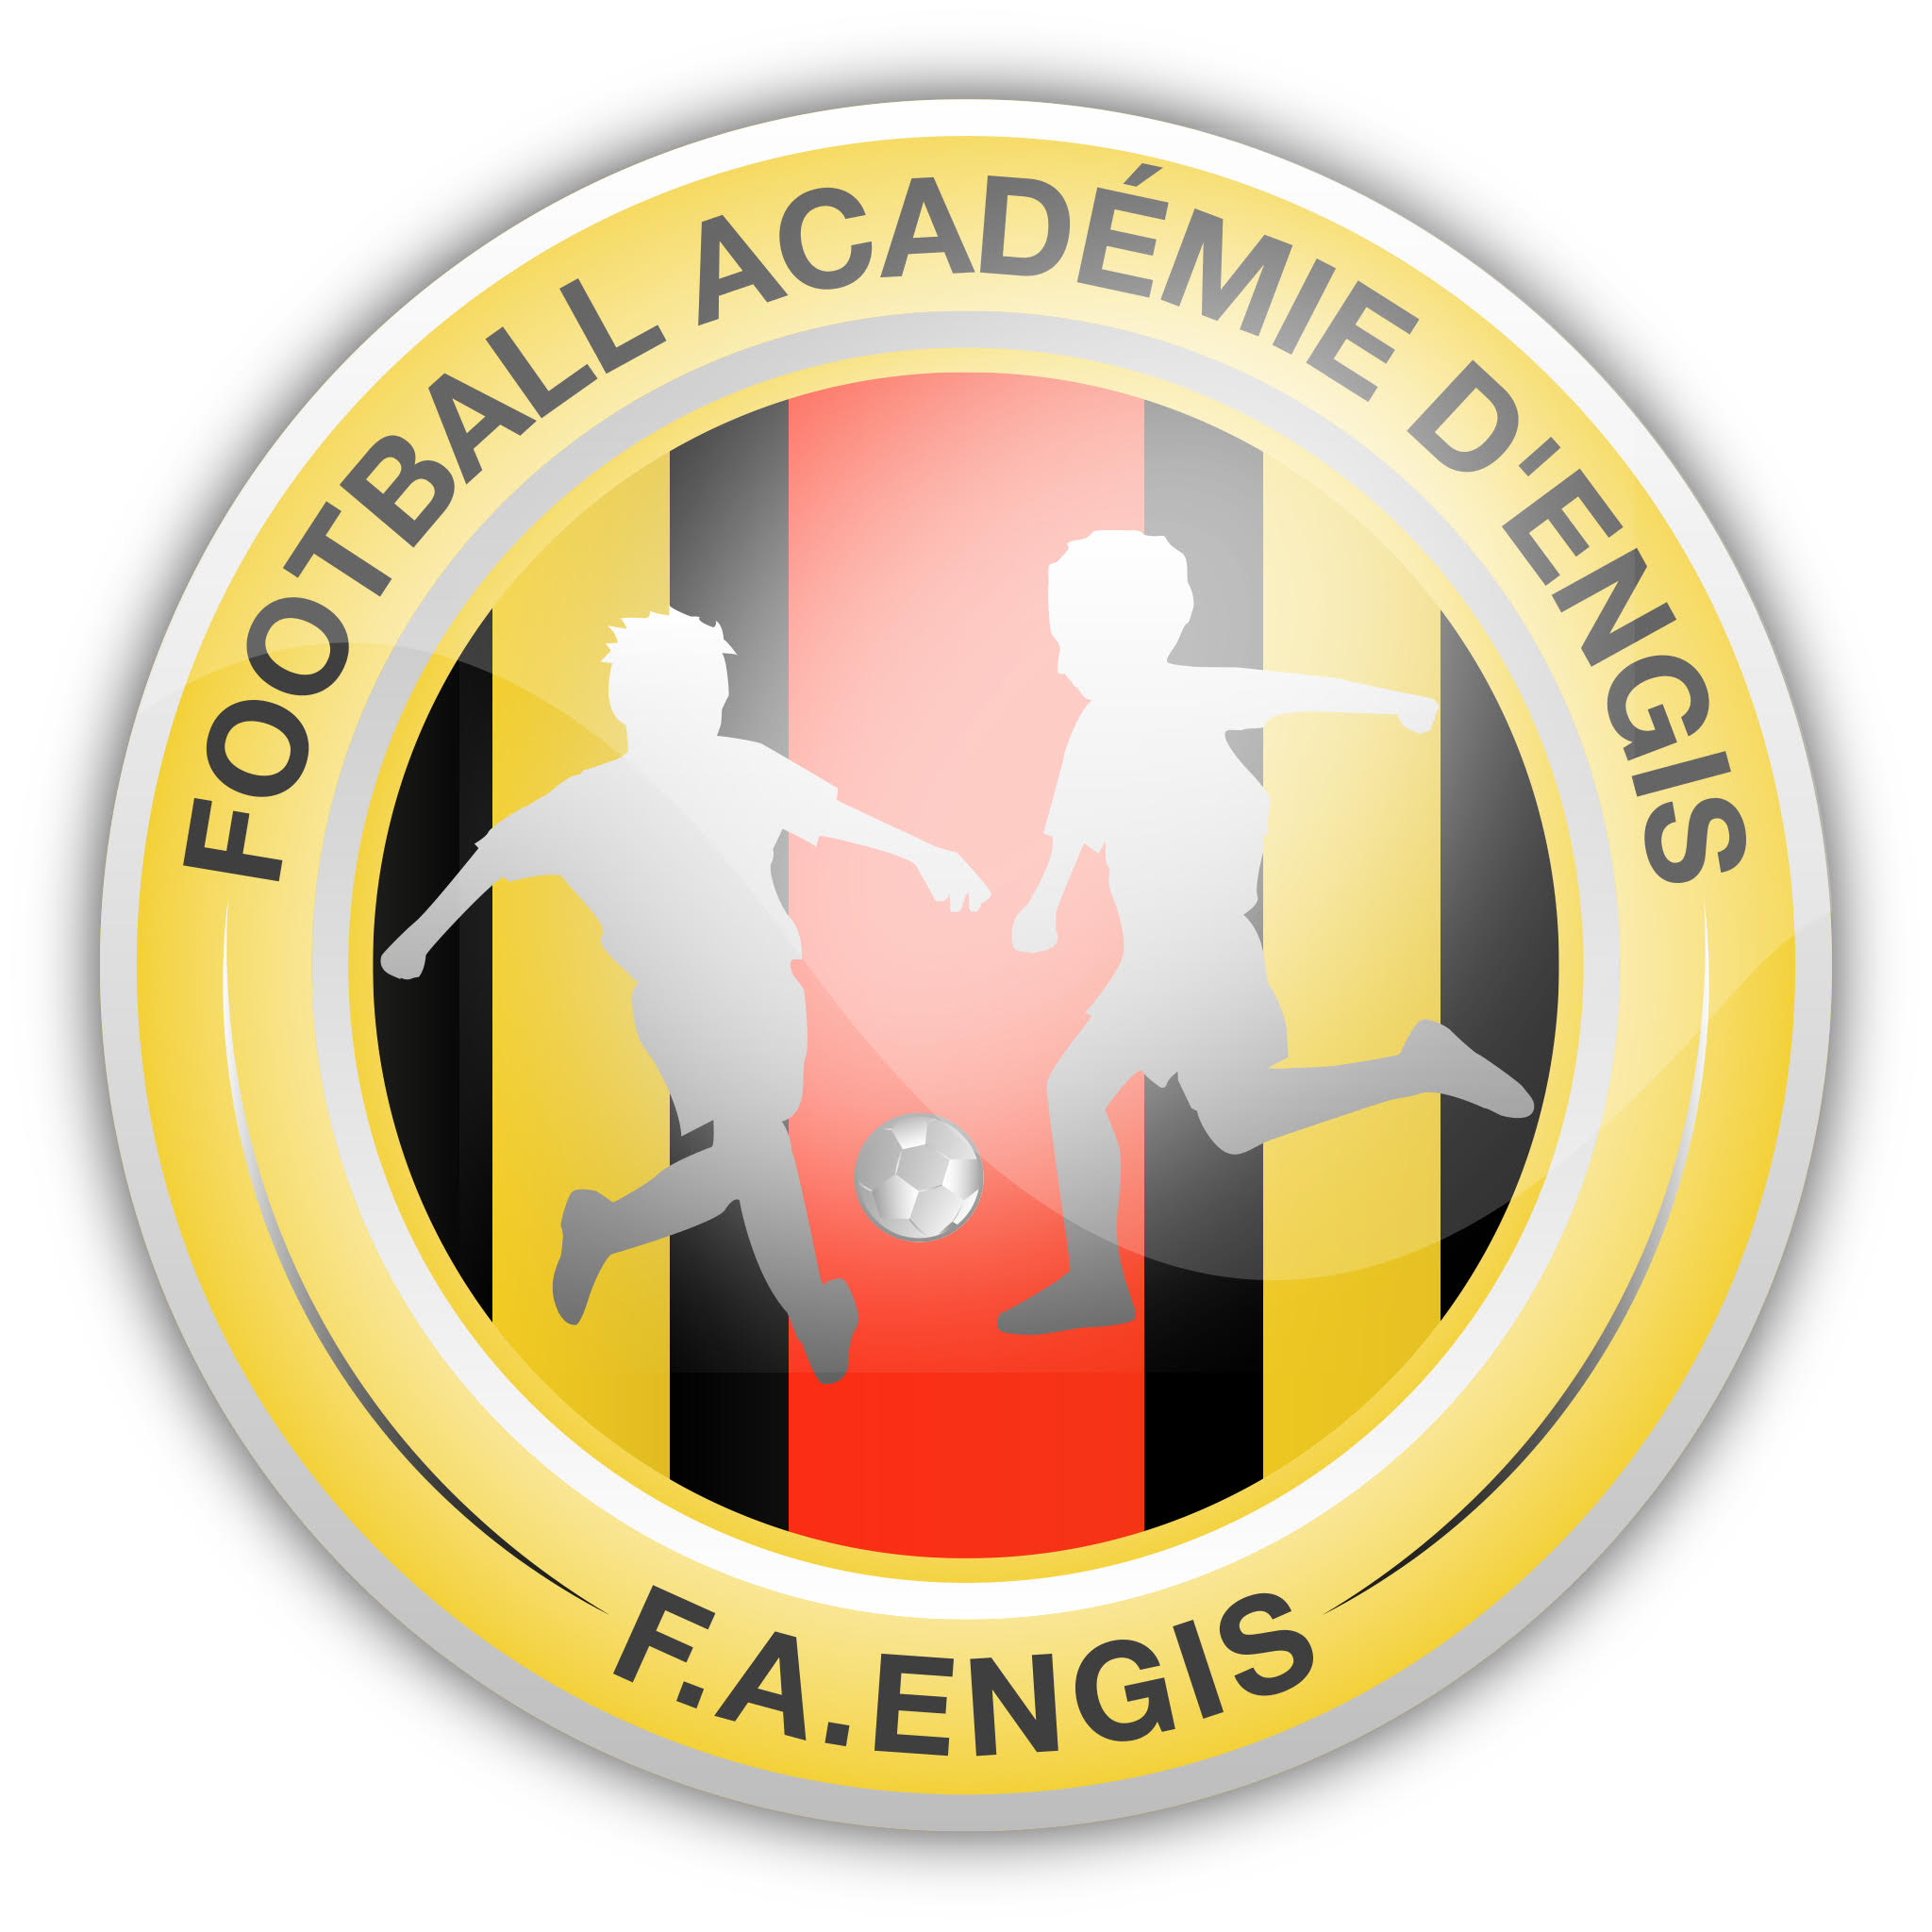 5 - Académie Football Engis